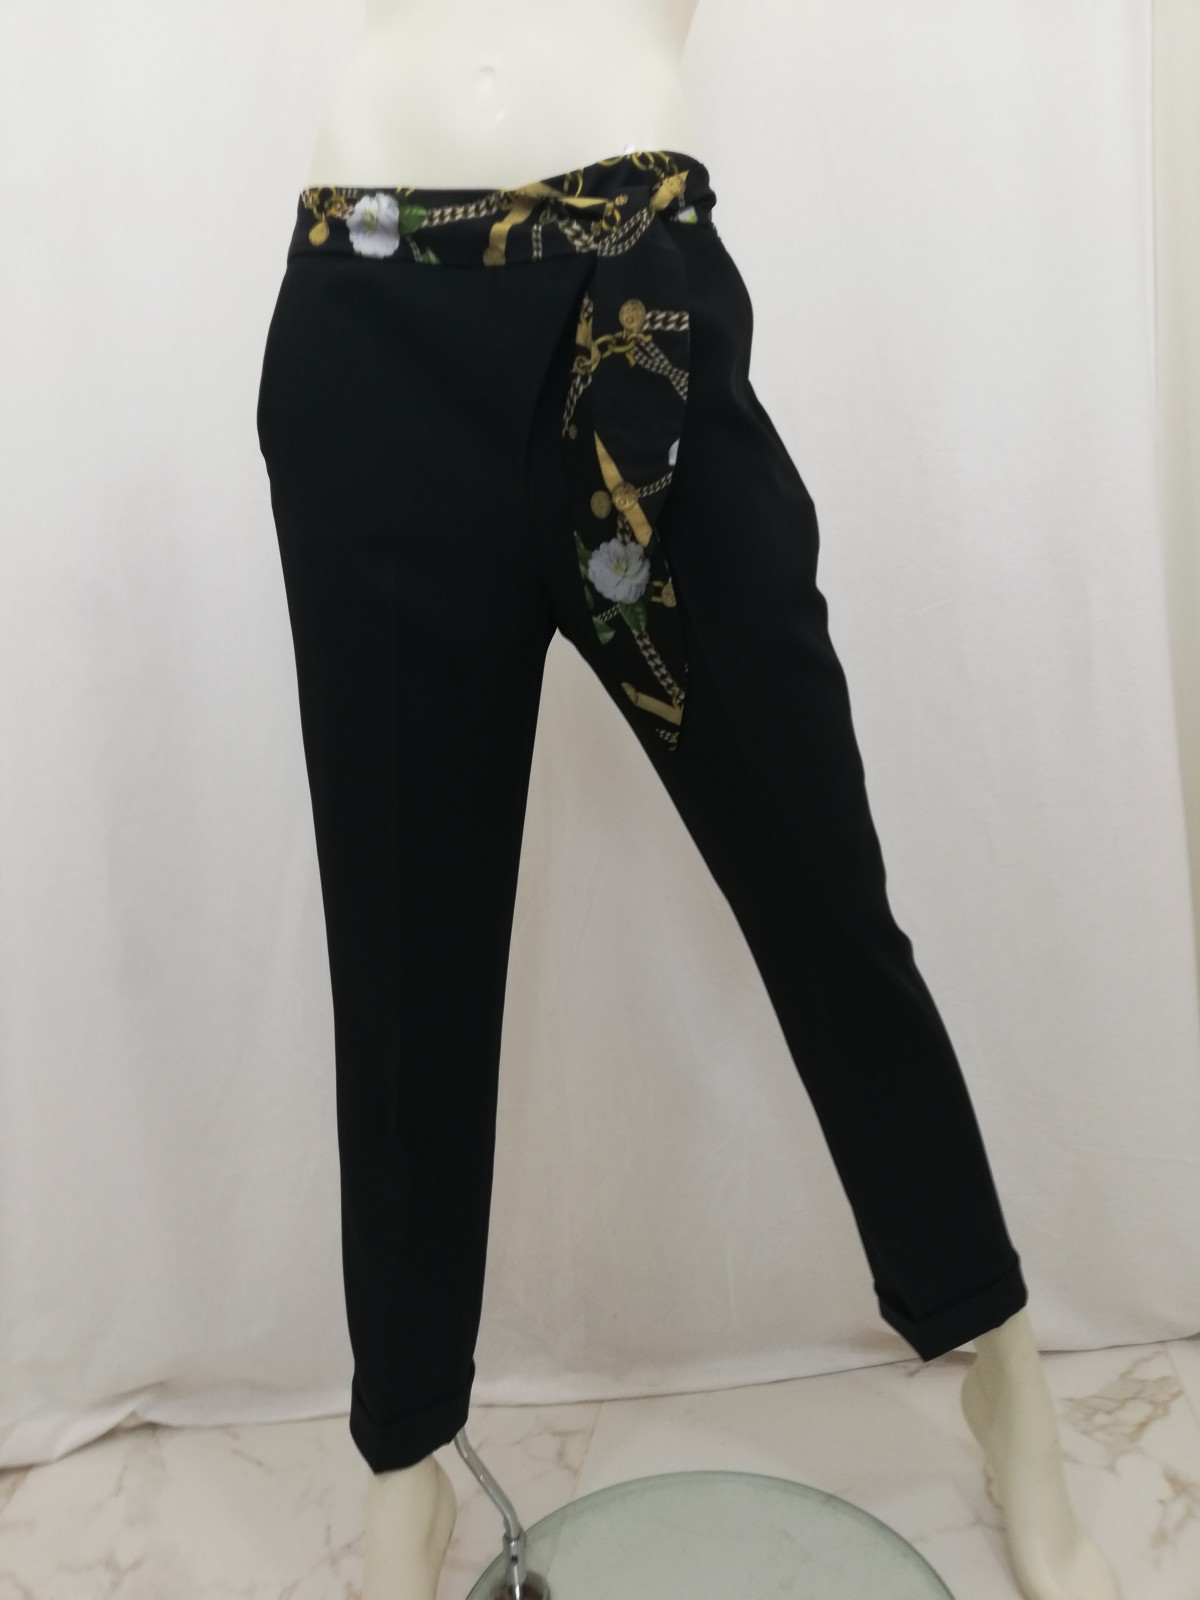 919c60511e Capri pants with turn-ups. Zipper to the side and cross-patterned belt. Liu  Jo